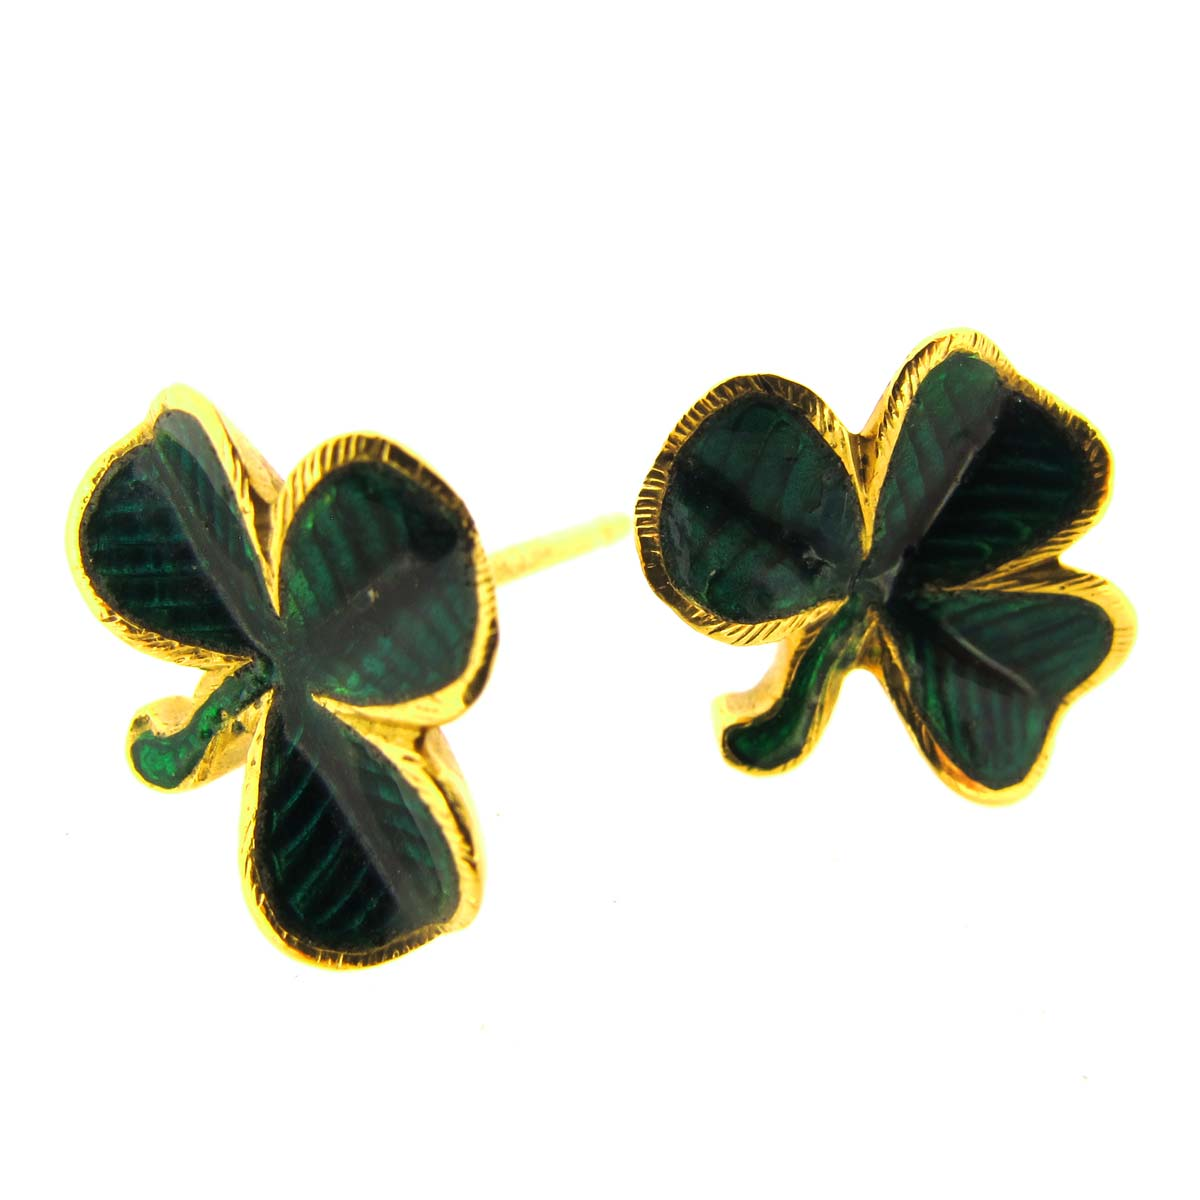 Gold & enamel shamrock earrings